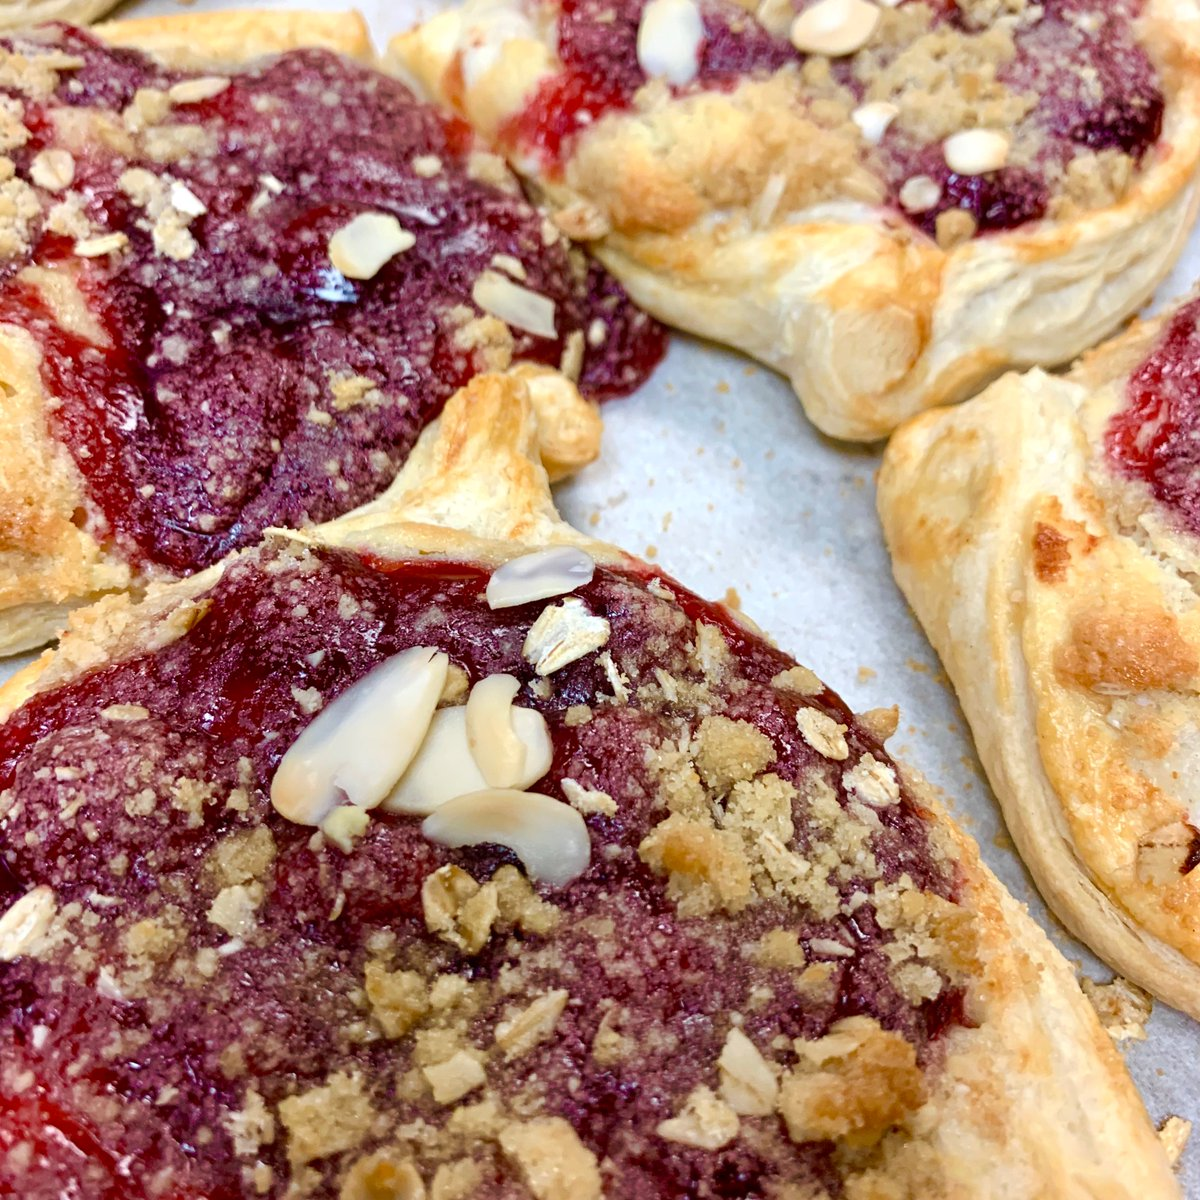 Made a few cherry danish this morning.  Beautiful - cold Saturday.  #danish #cherry #bakery #barre #centralvermont